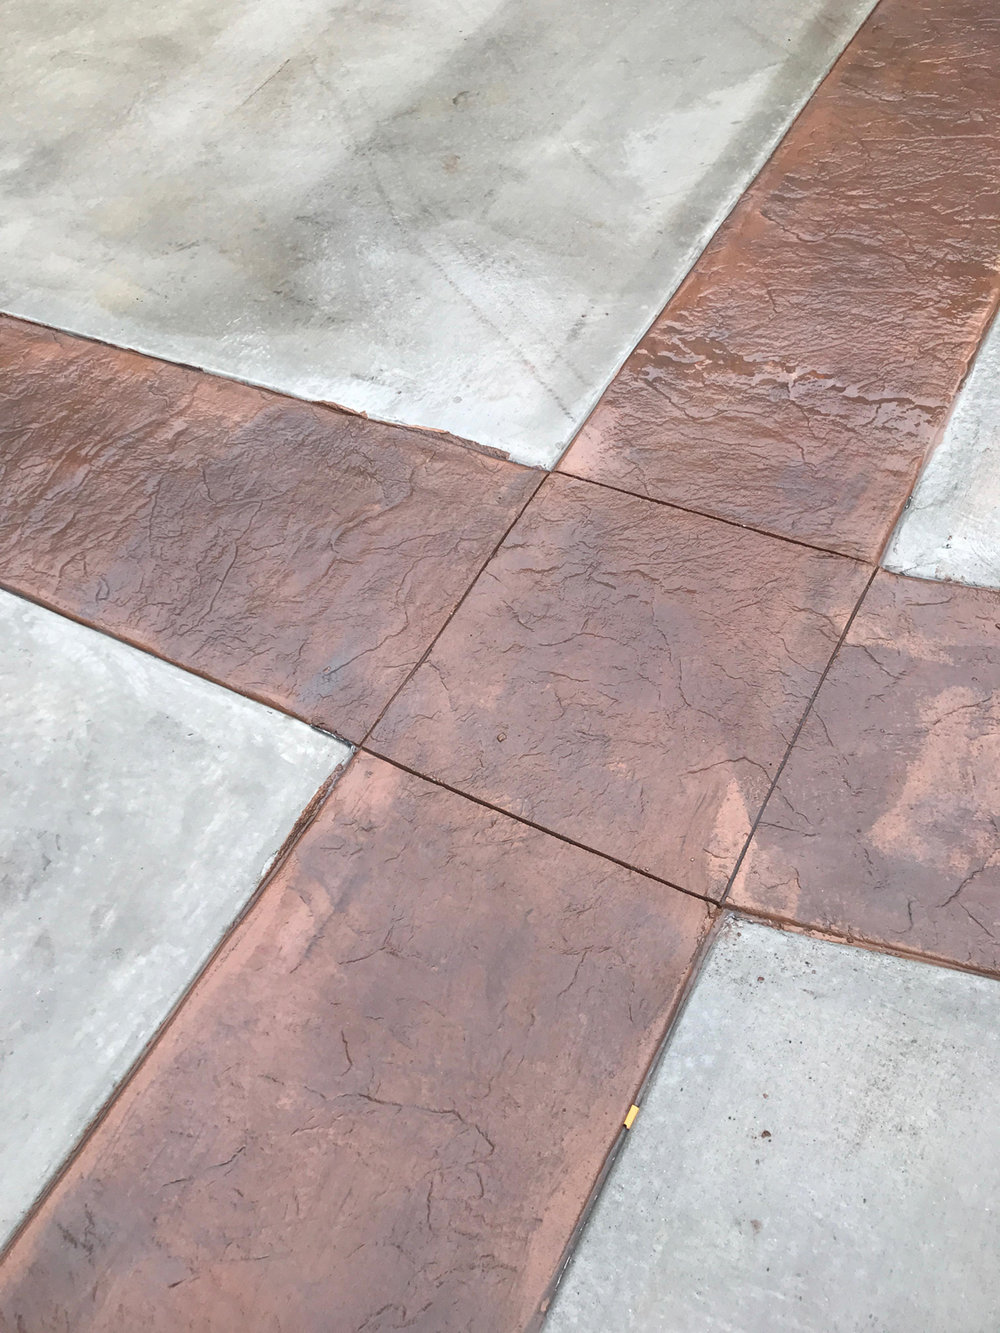 This is another picture of the custom driveway that we did using the colors Leather and Ginger. The color we use comes from Live Oak Hardware.